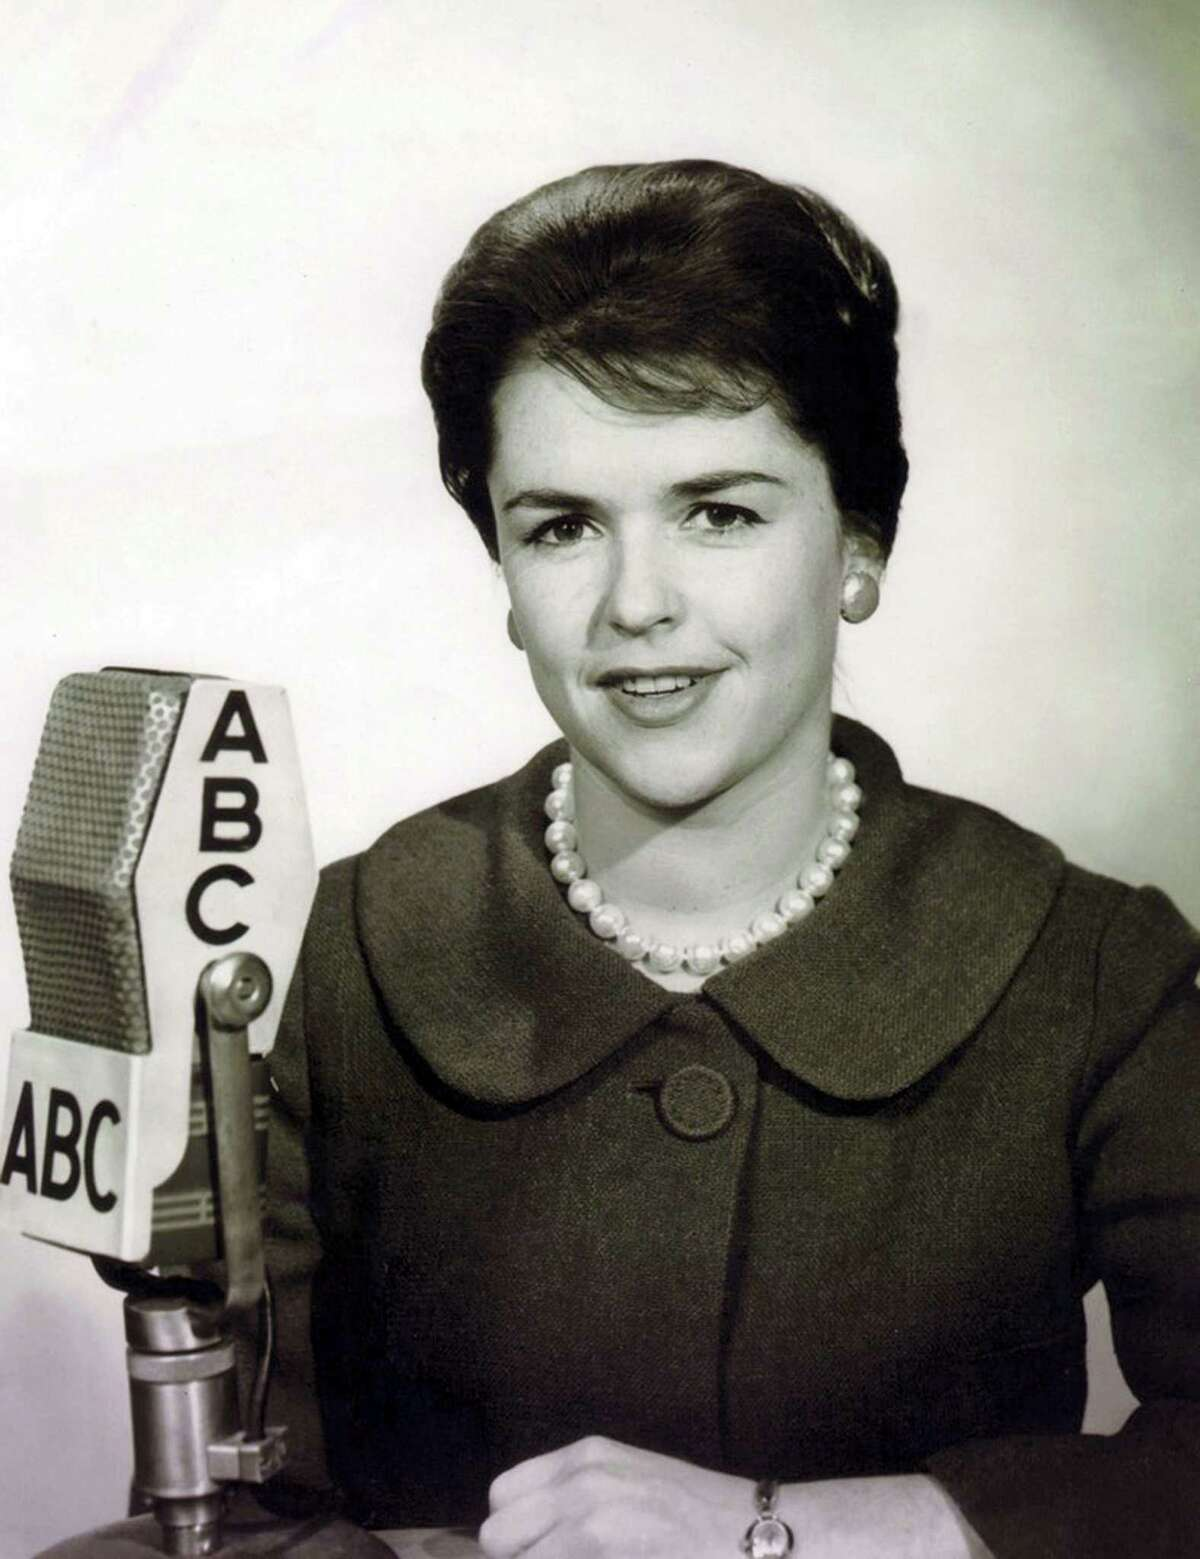 This 1967 photo made available by ABC News shows Anne Morrissy Merick, who fought to give female reporters equal access to cover the Vietnam War. Morrisey Merick died on May 2 in Naples, Fla. She was 83.